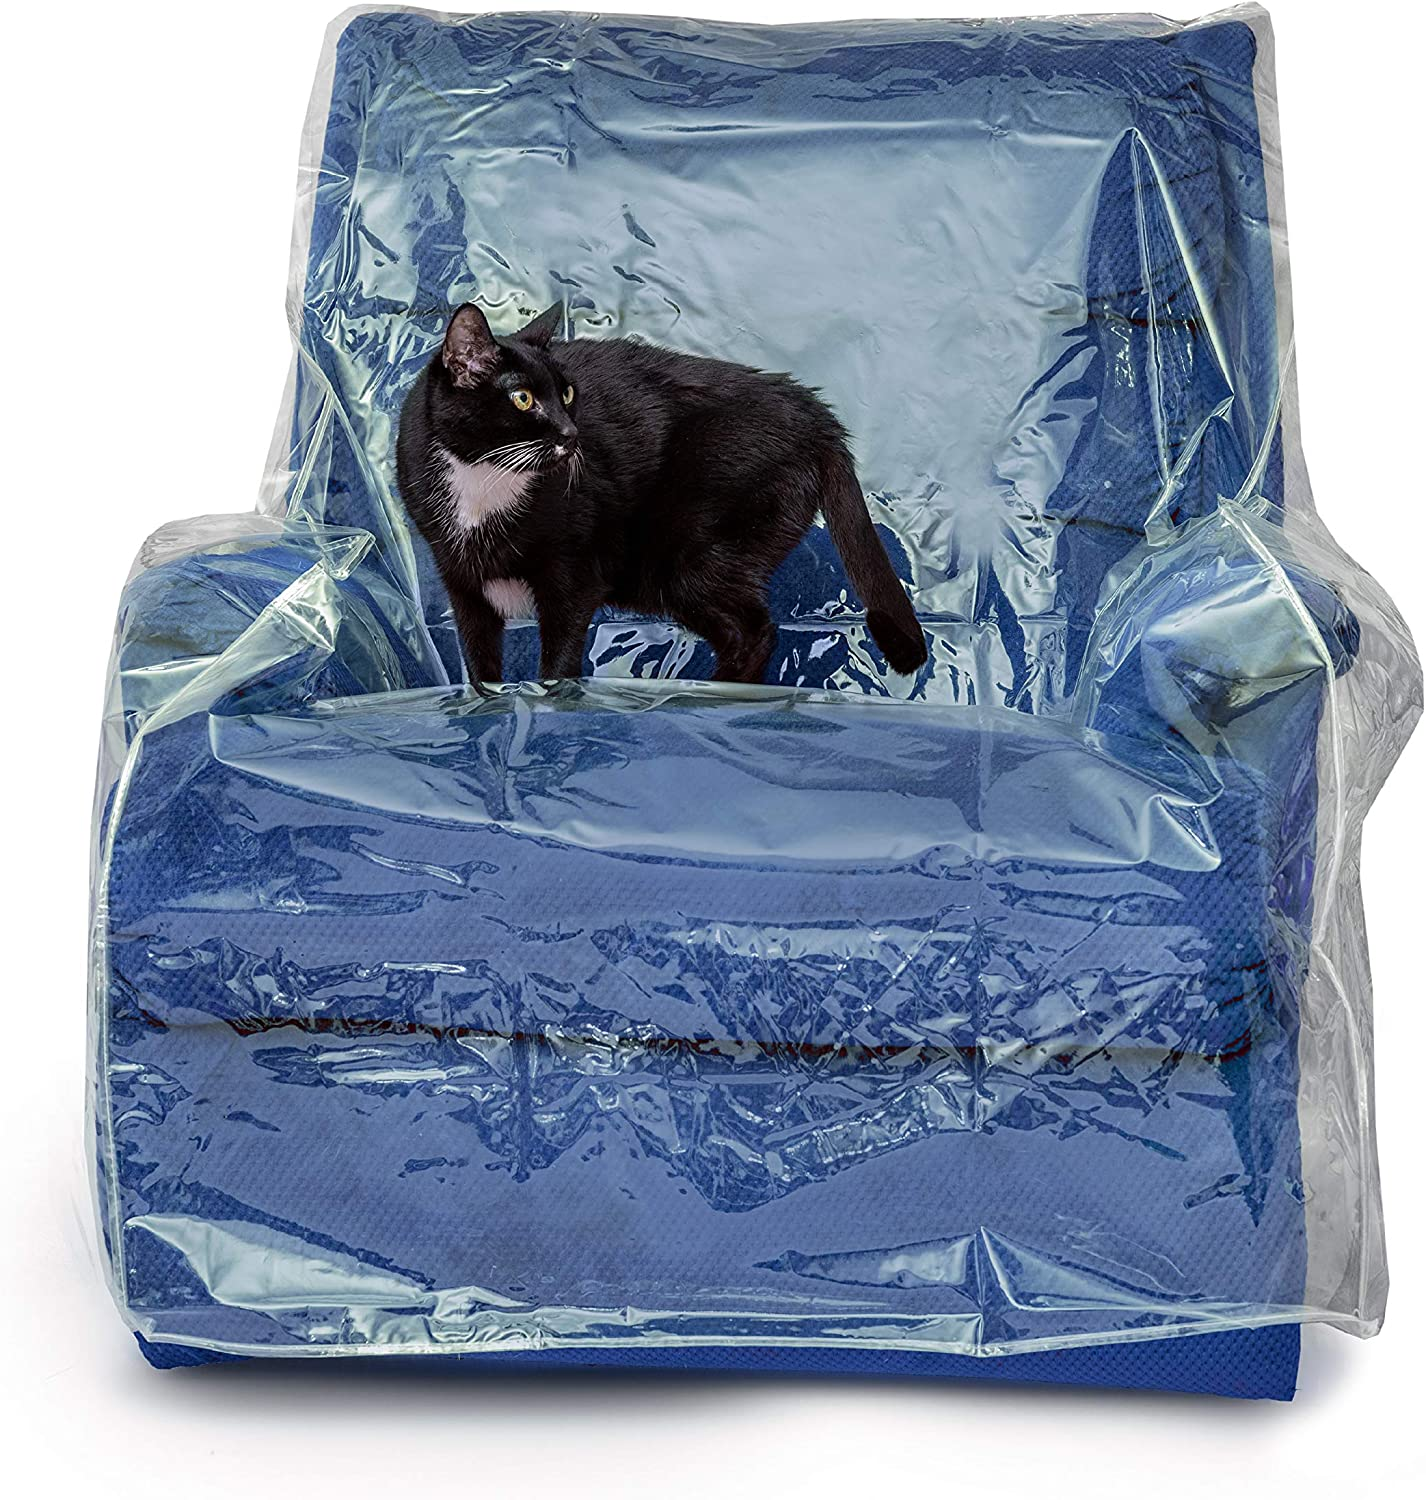 Besti Plastic Recliner Armchair Cover for Pets - Chair Protection from Dog and Cat Pee, Fur, Hair, Bite, Scratch - Heavy-Duty Thick Clear Furniture Cushion Slipcover - Waterproof Vinyl Seat Protector